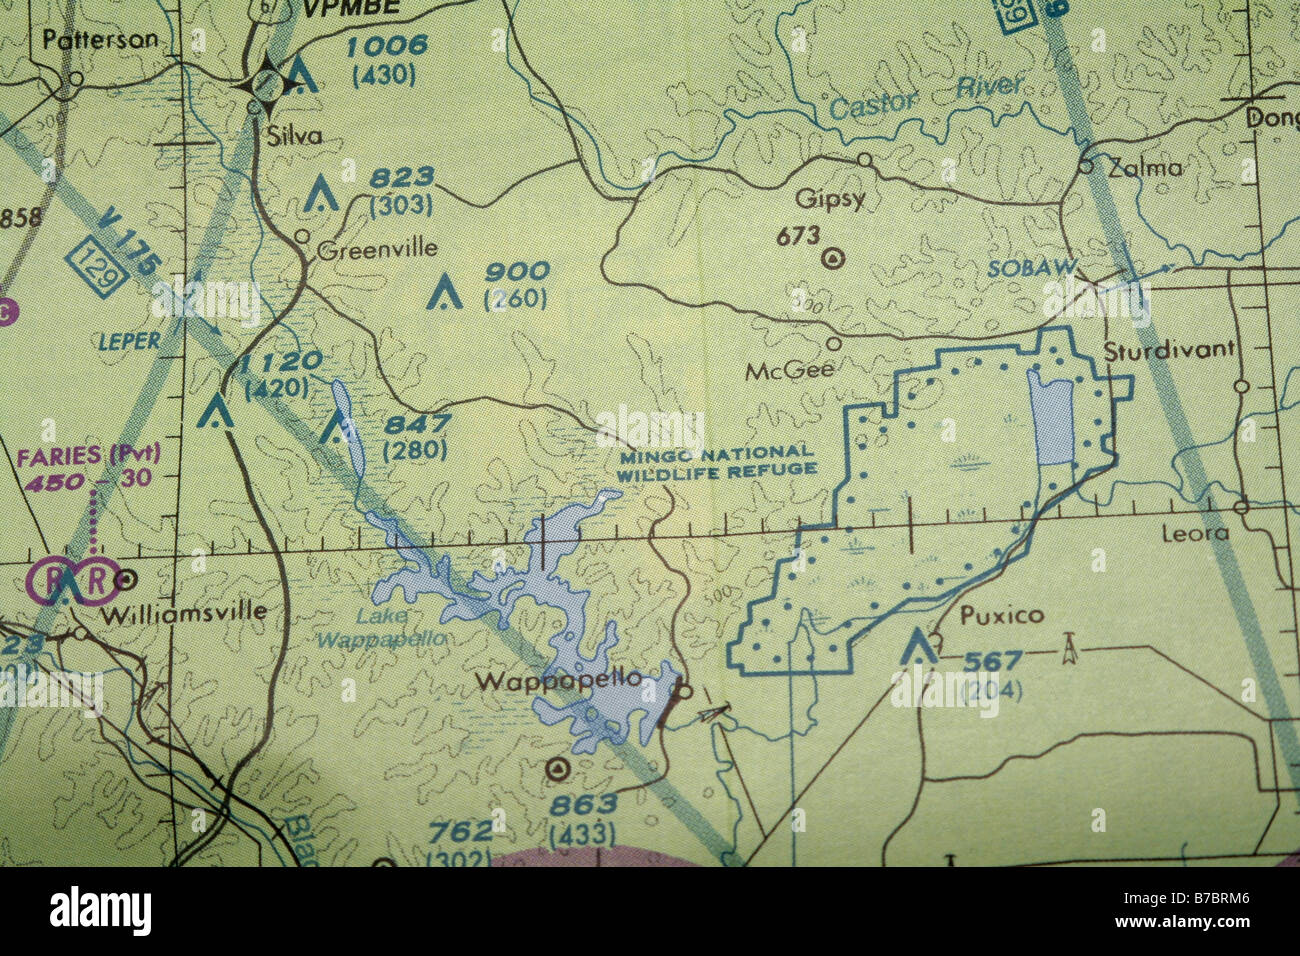 Aeronautical Map Stock Photos & Aeronautical Map Stock ... on ham radio dx maps, electronic maps, mobile maps, faa flight paths maps, military maps, organizational maps, navigation maps, national geographic floor maps, food maps, search maps, nautical maps, science maps, jeppesen maps, agriculture maps, shipping maps, aviation maps, engineering maps, teaching maps, oil and gas maps,